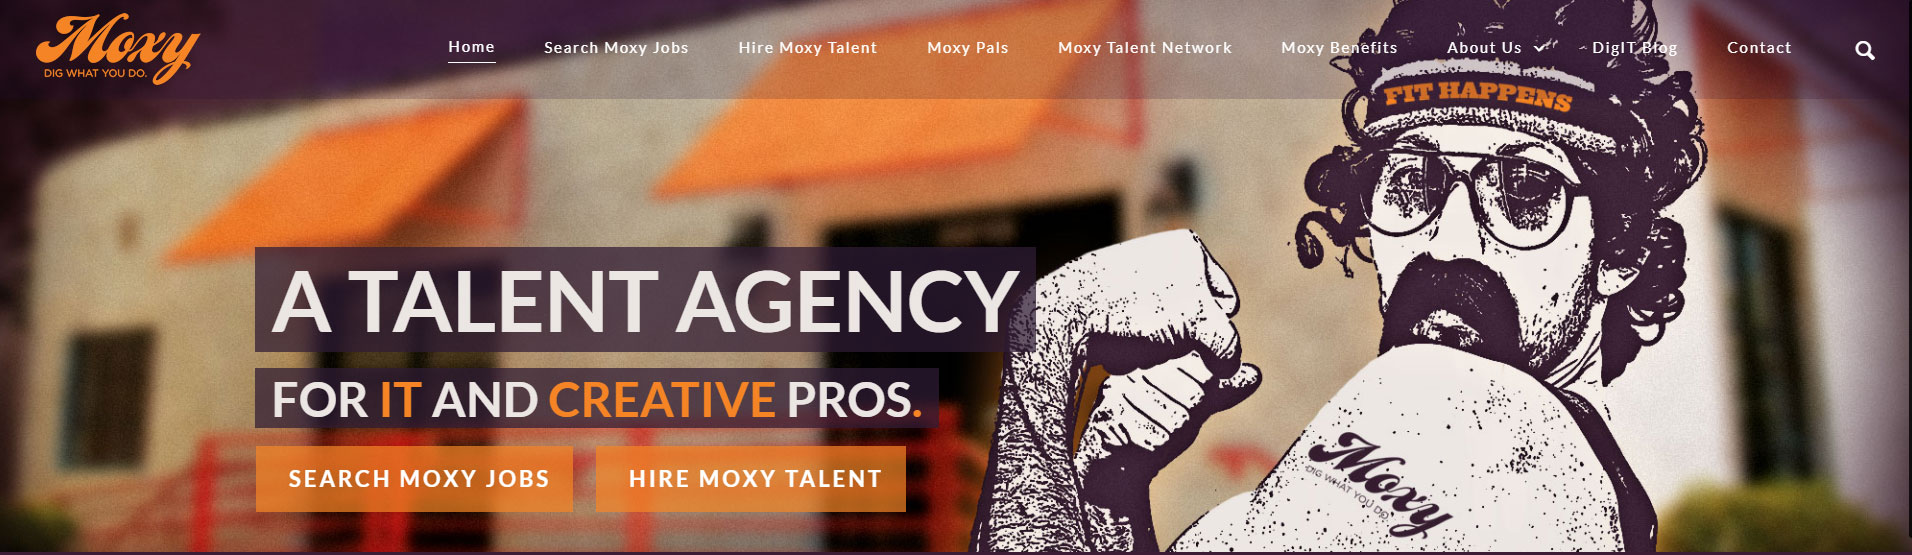 Moxy-home-page